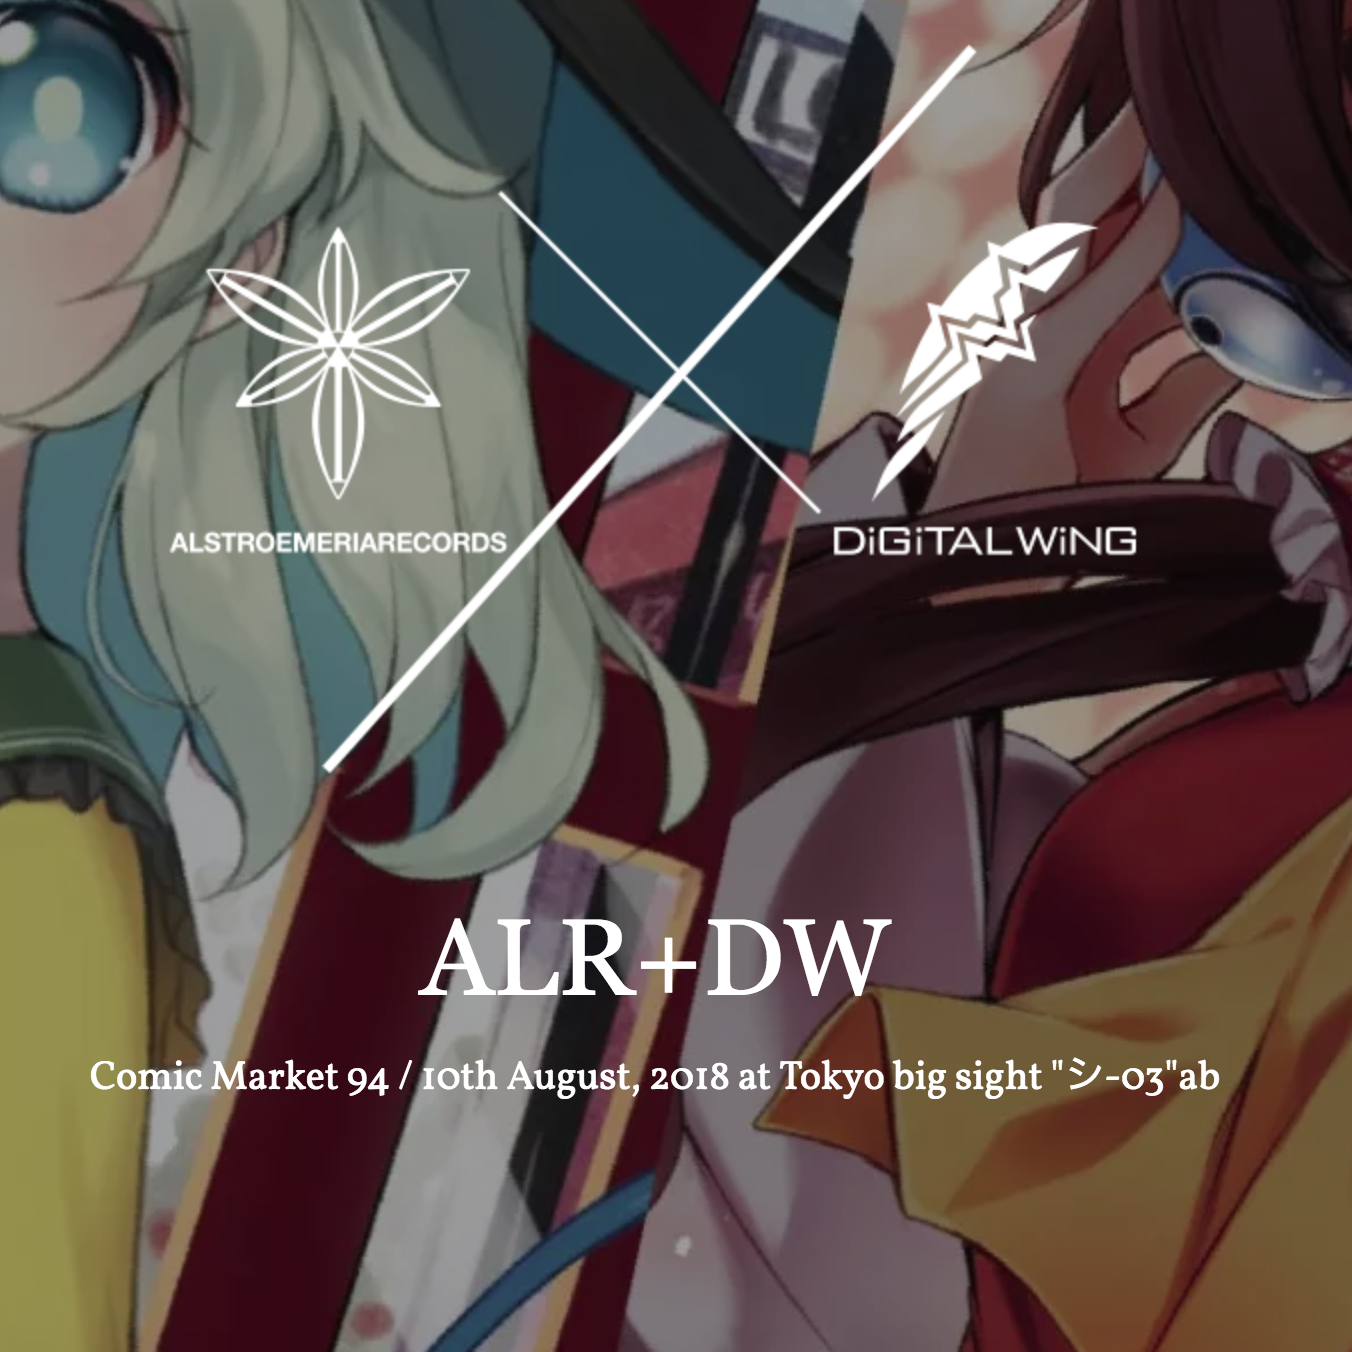 ALR+DW SPECIAL LAUNCH SITE